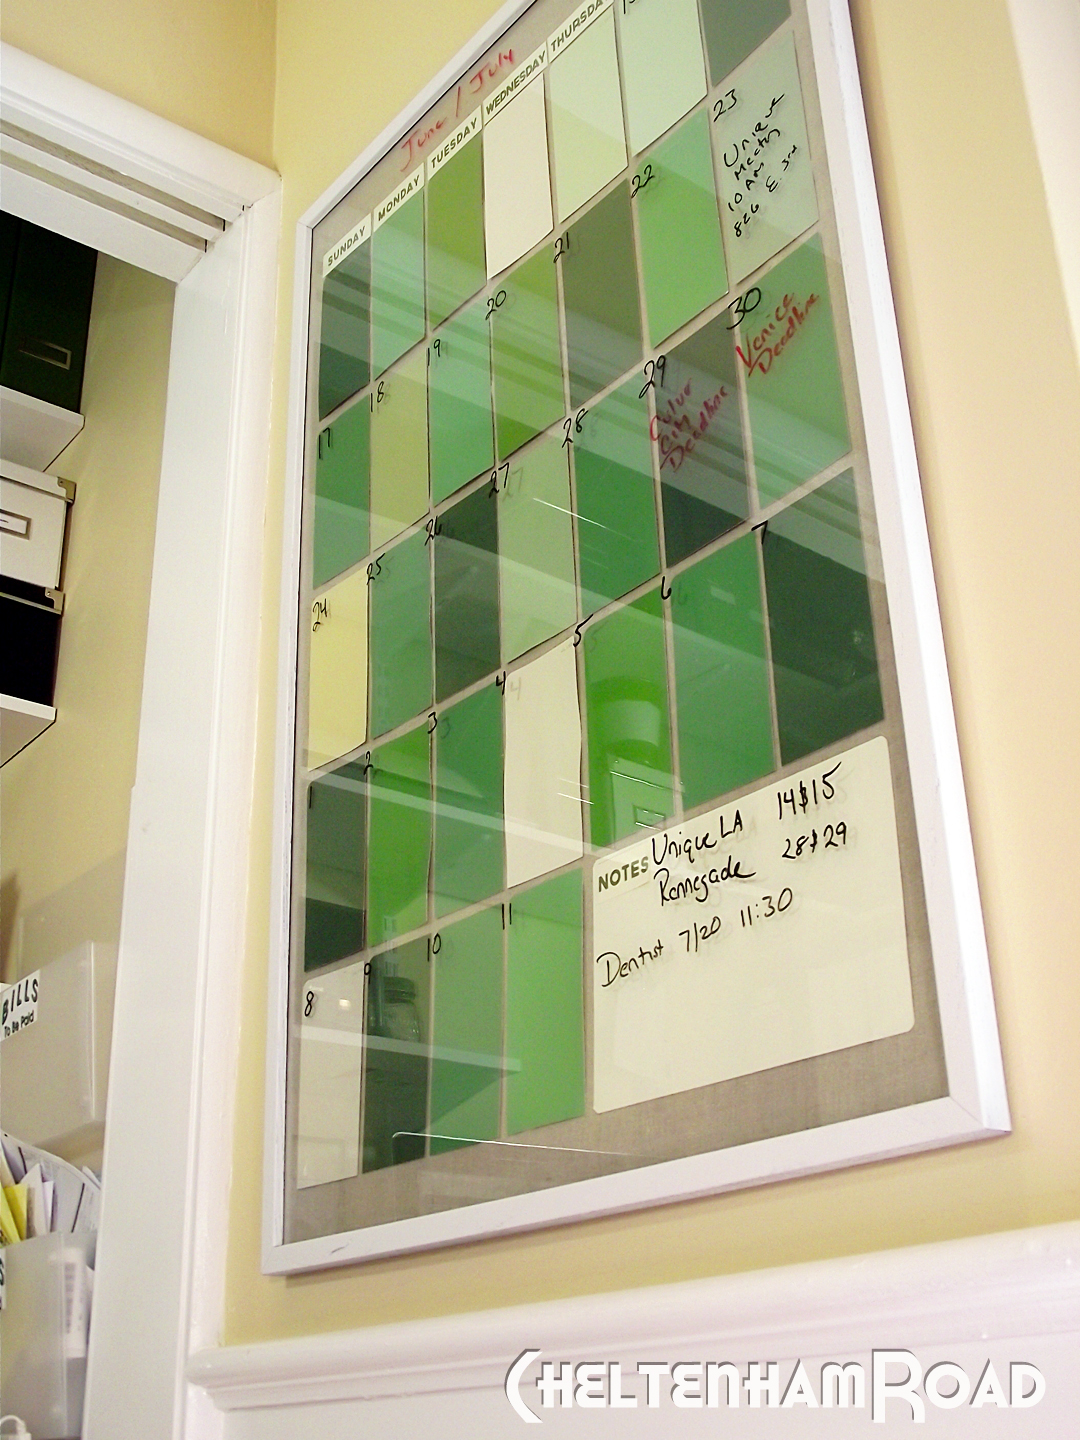 17 best images about office inspiration on pinterest dry erase board calendar and chalk board